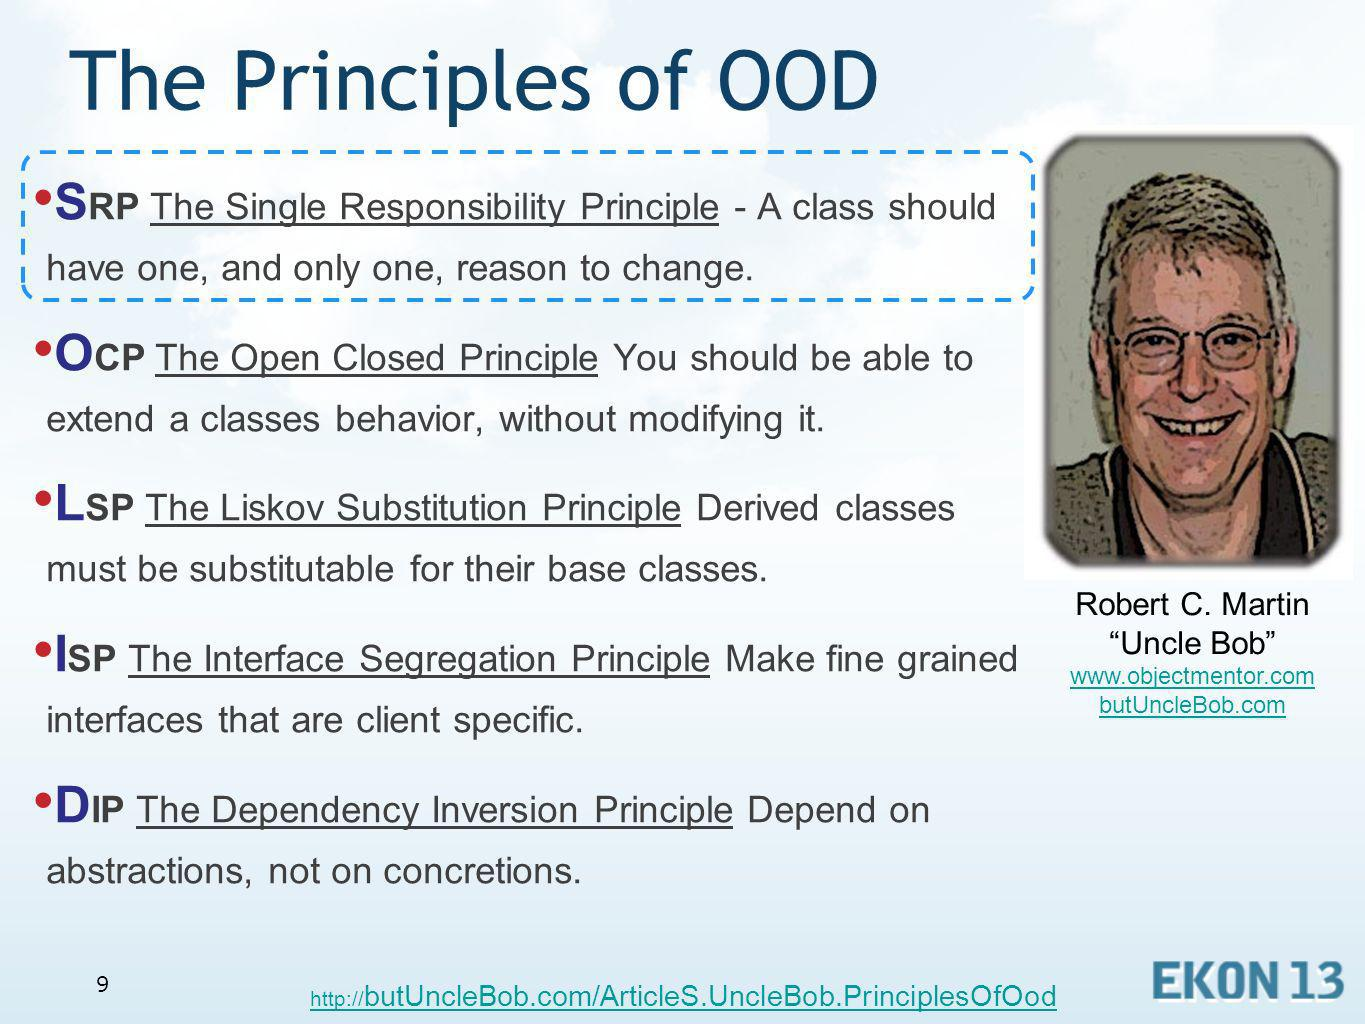 The Principles of OODSRP The Single Responsibility Principle - A class should have one, and only one, reason to change.